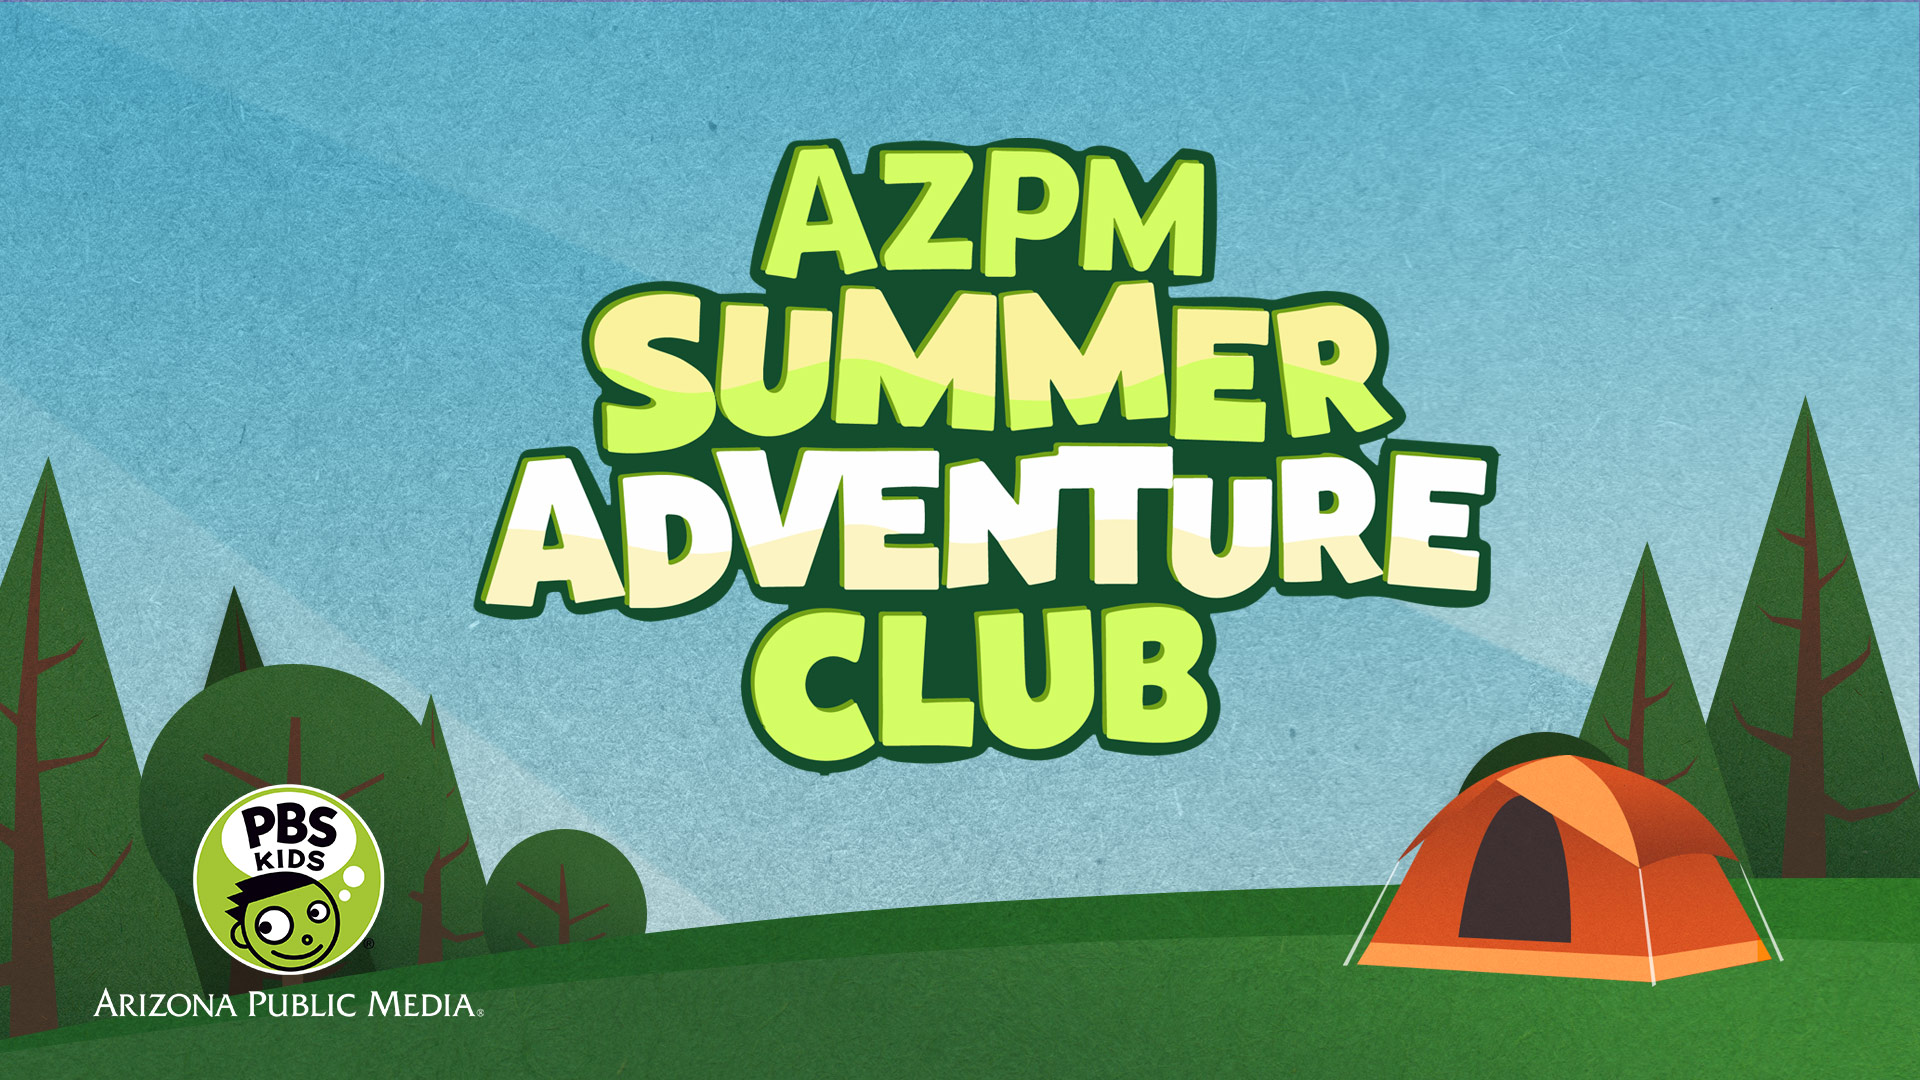 AZPM Summer Adventure Club